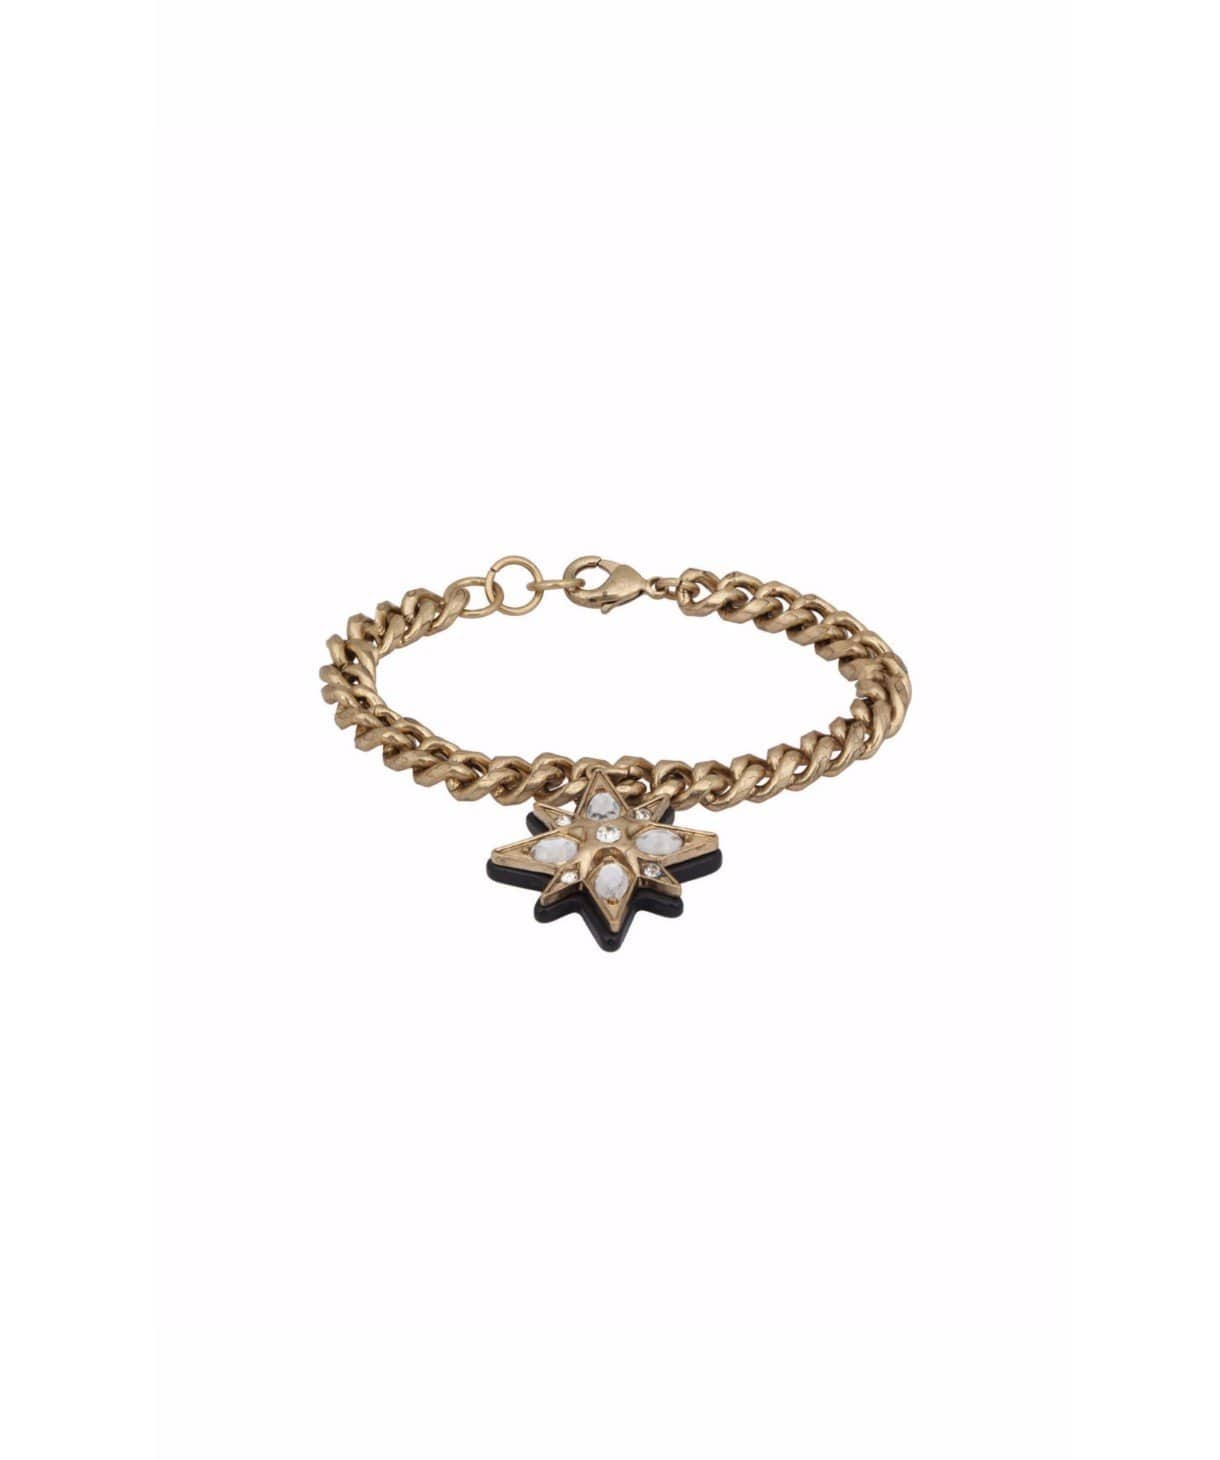 Star Trinket Bracelet - Uptownie